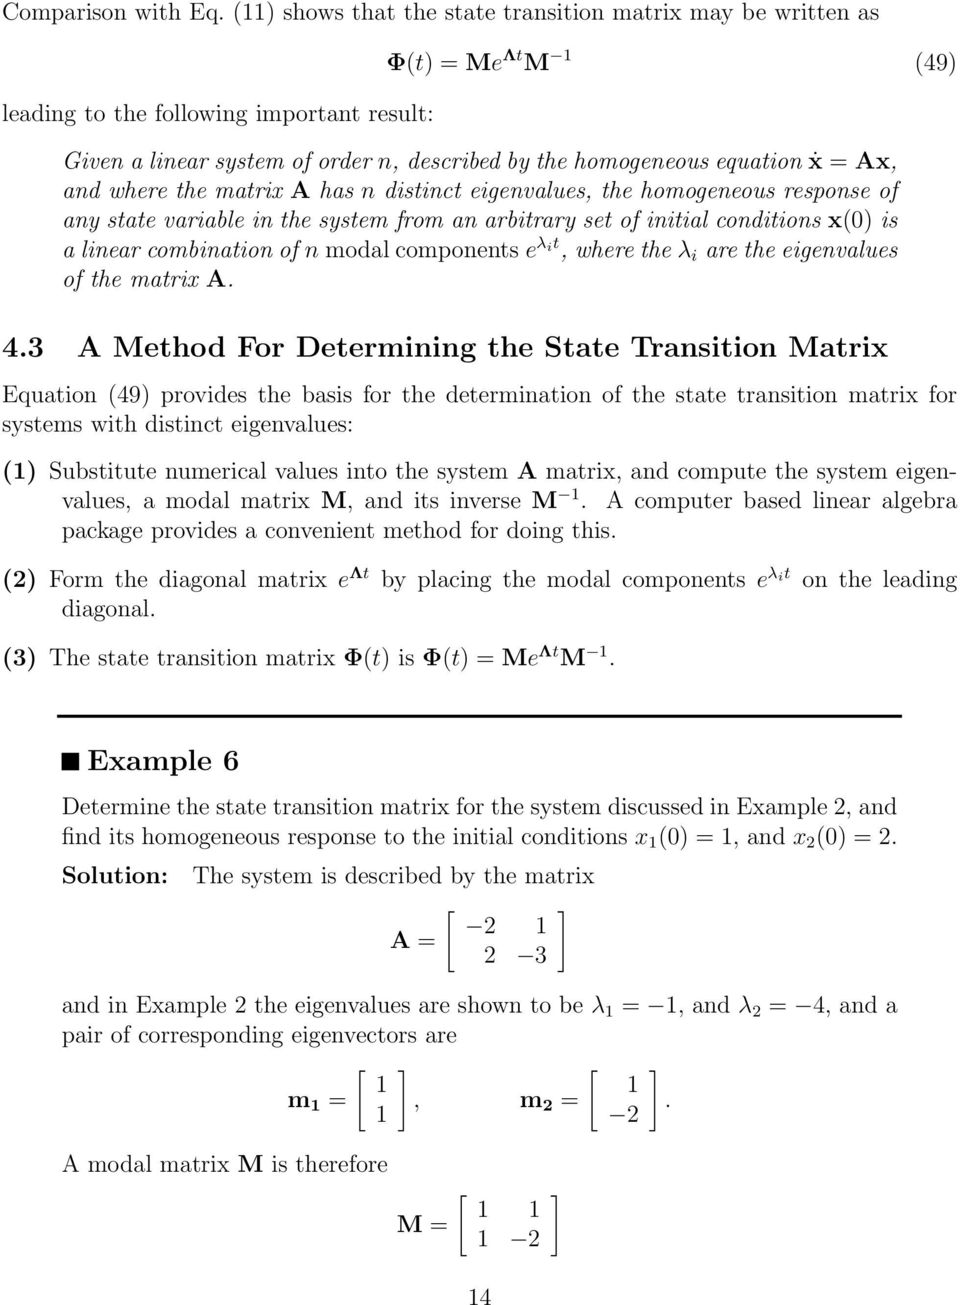 Ax, and where the matrix A has n distinct eigenvalues, the homogeneous response of any state variable in the system from an arbitrary set of initial conditions x() is a linear combination of n modal